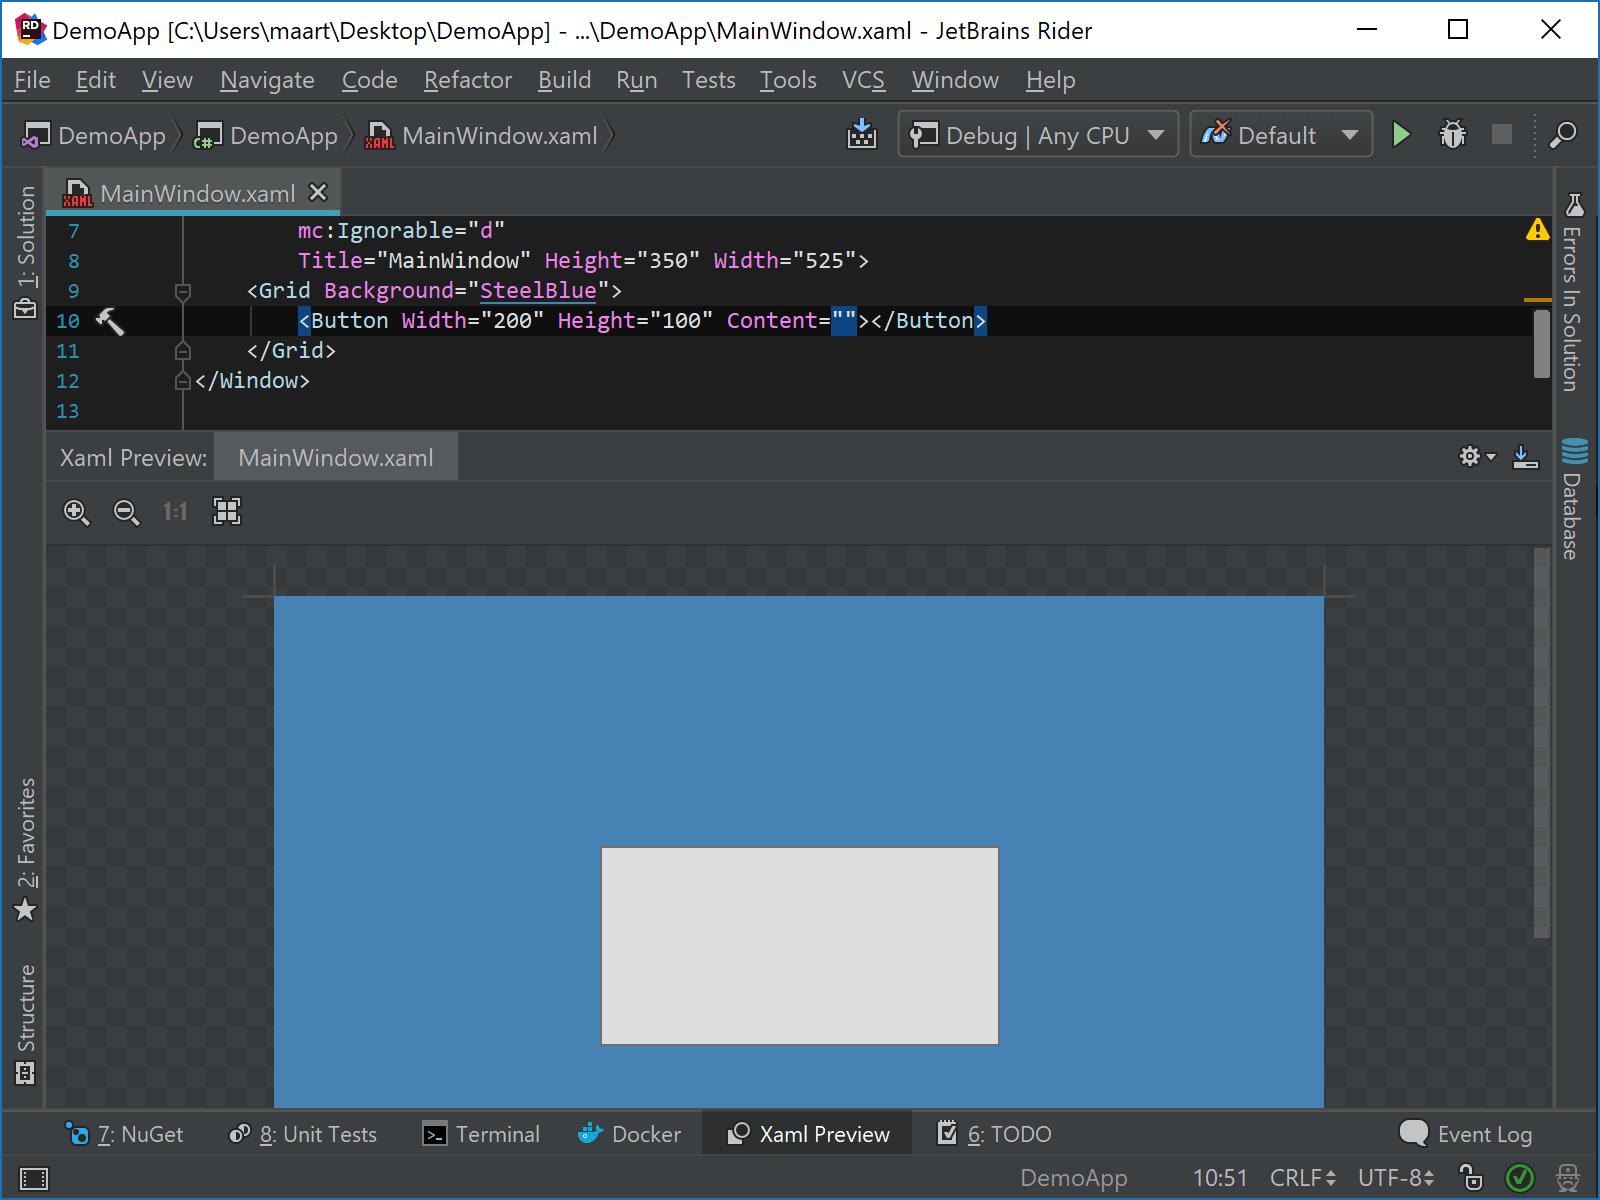 Preview XAML changes immediately using Rider WPF preview